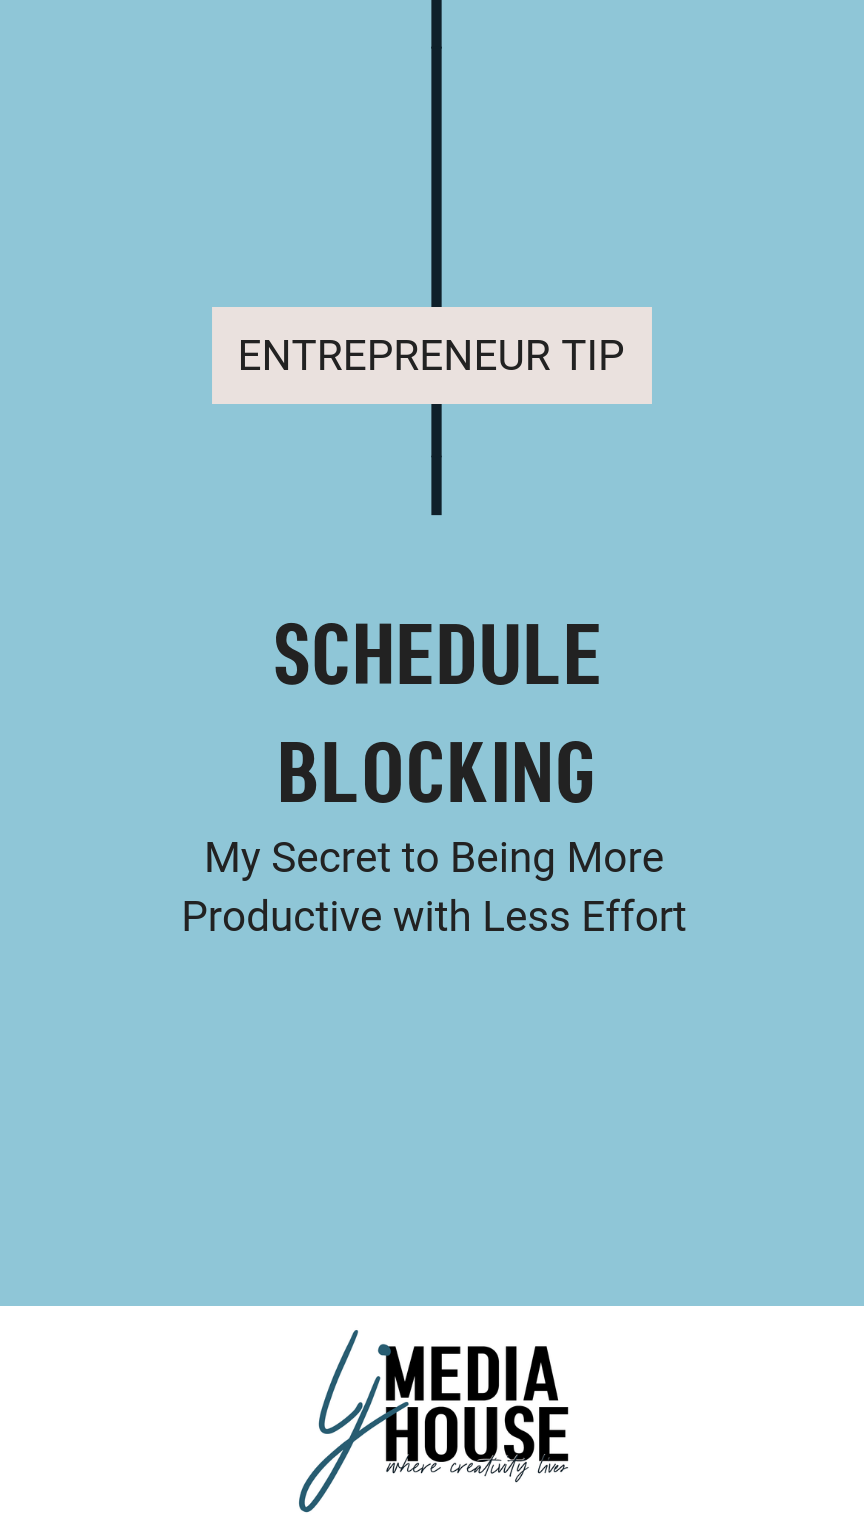 Schedule Blocking: My Secret to Being More Productive with